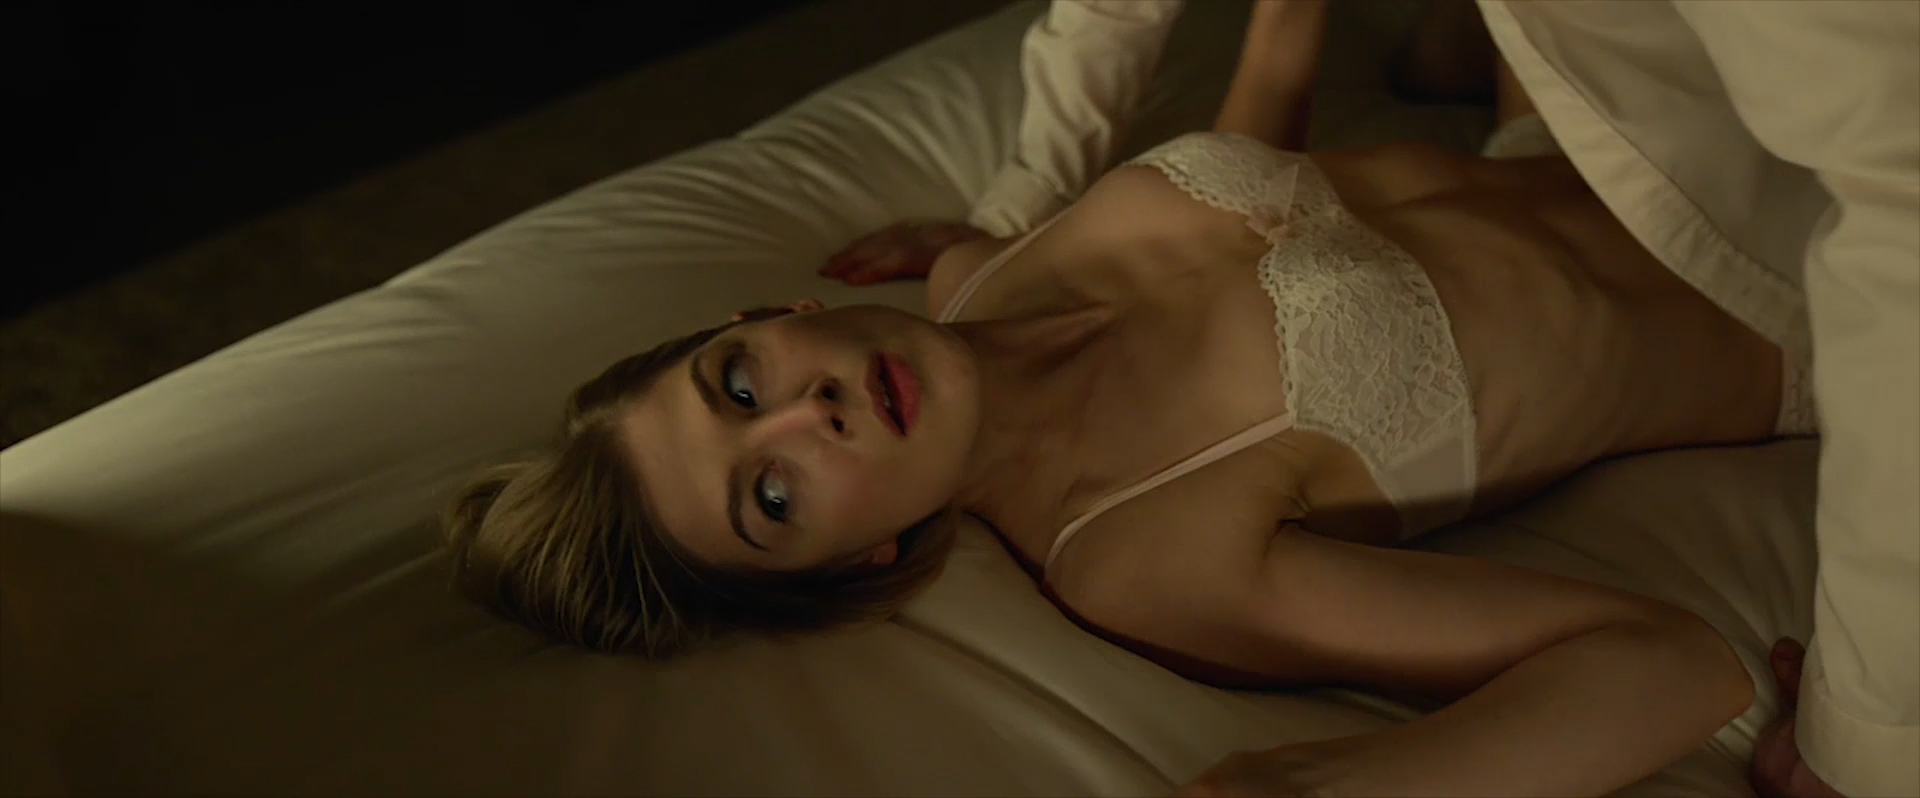 Rosamund Pike nude side boob and sex and Emily Ratajkowski nude topless and sex - Gone Girl (2014) WEB-DL hd1080p (3)